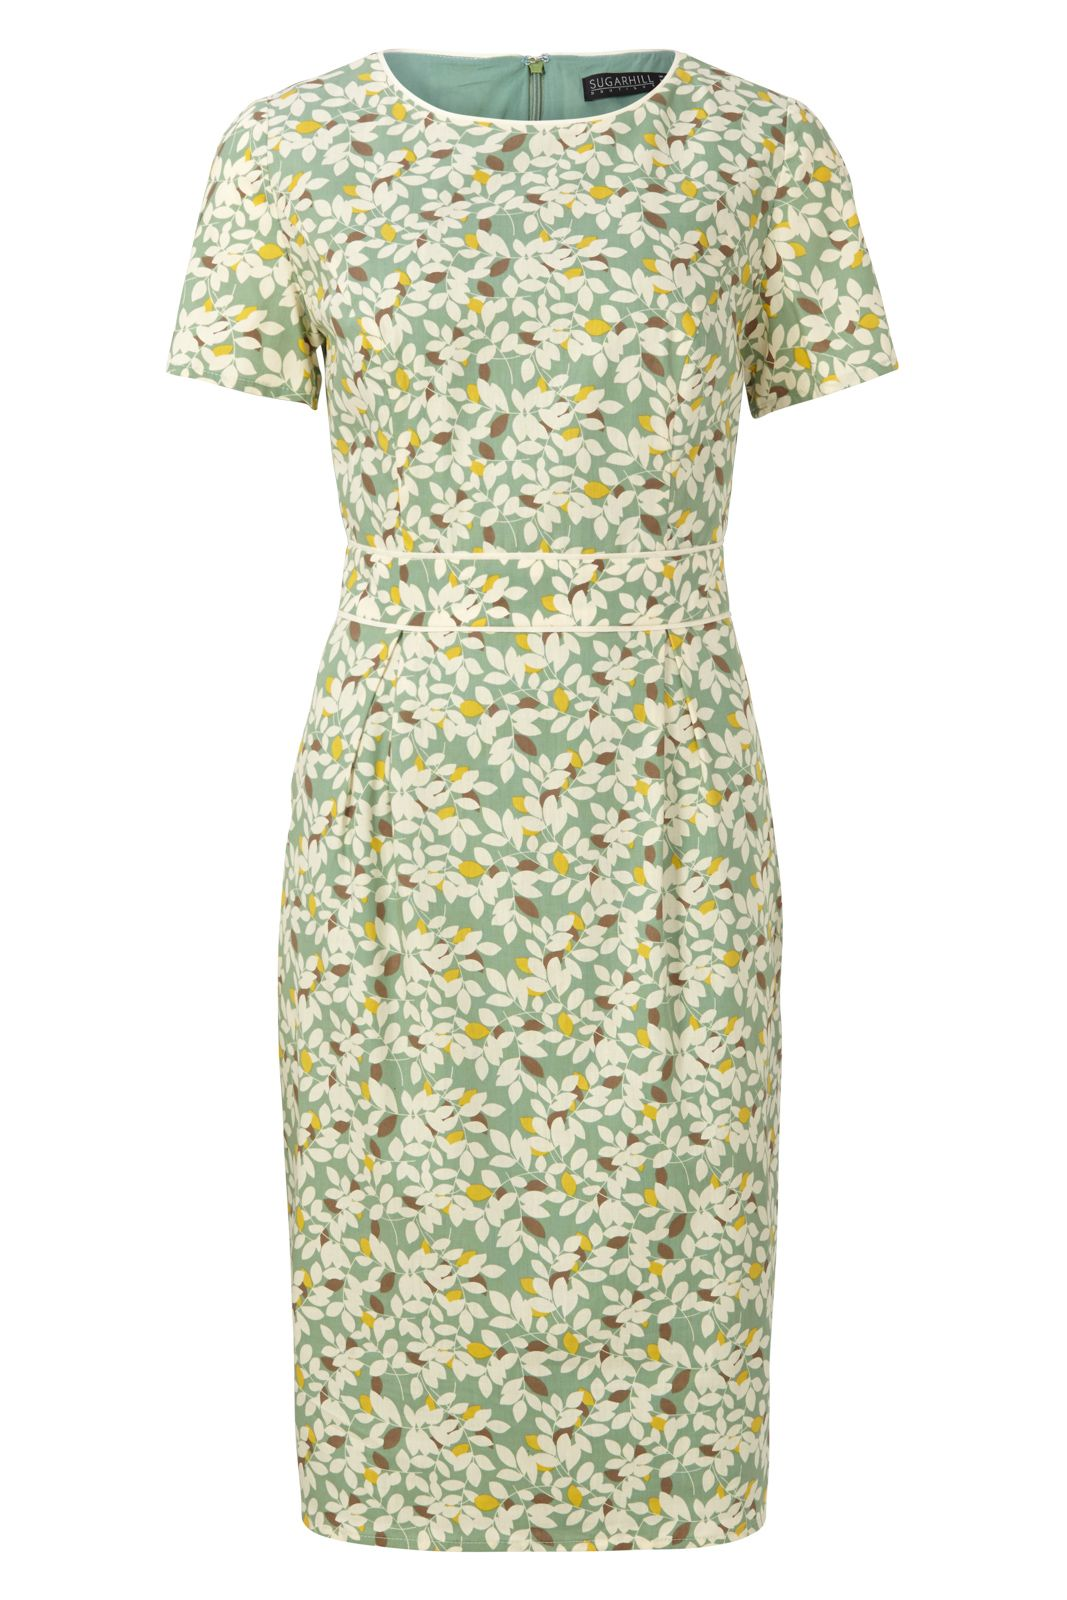 Sugarhill Boutique Ivana Shift Dress With Piping, Green